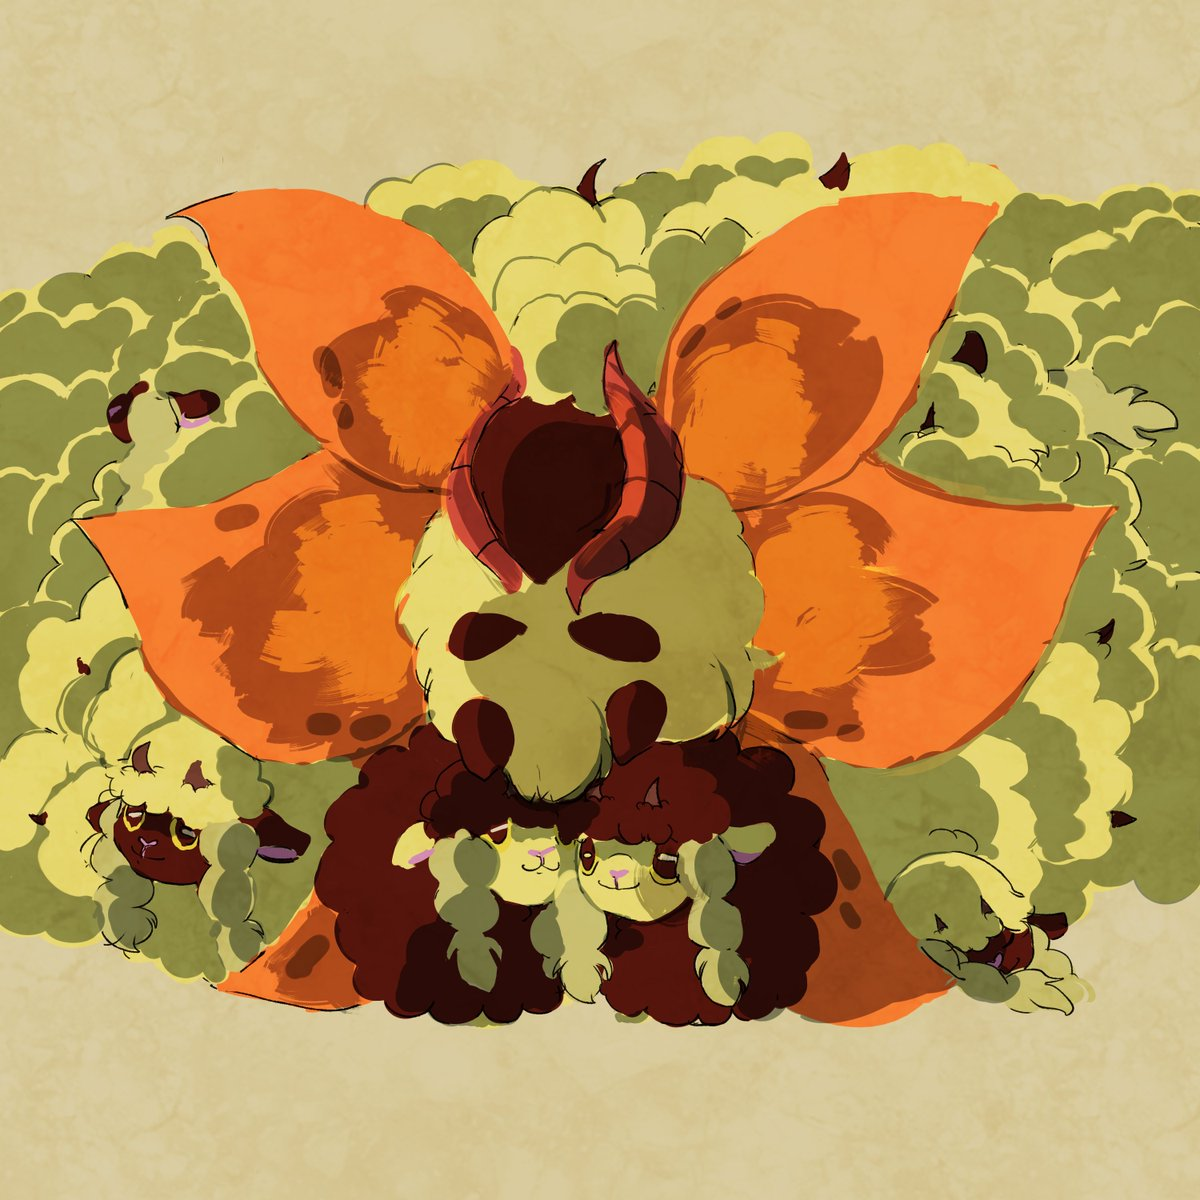 a family can be two black sheep, their 878 white siblings, and their moth uncle with flame body #Pokemon